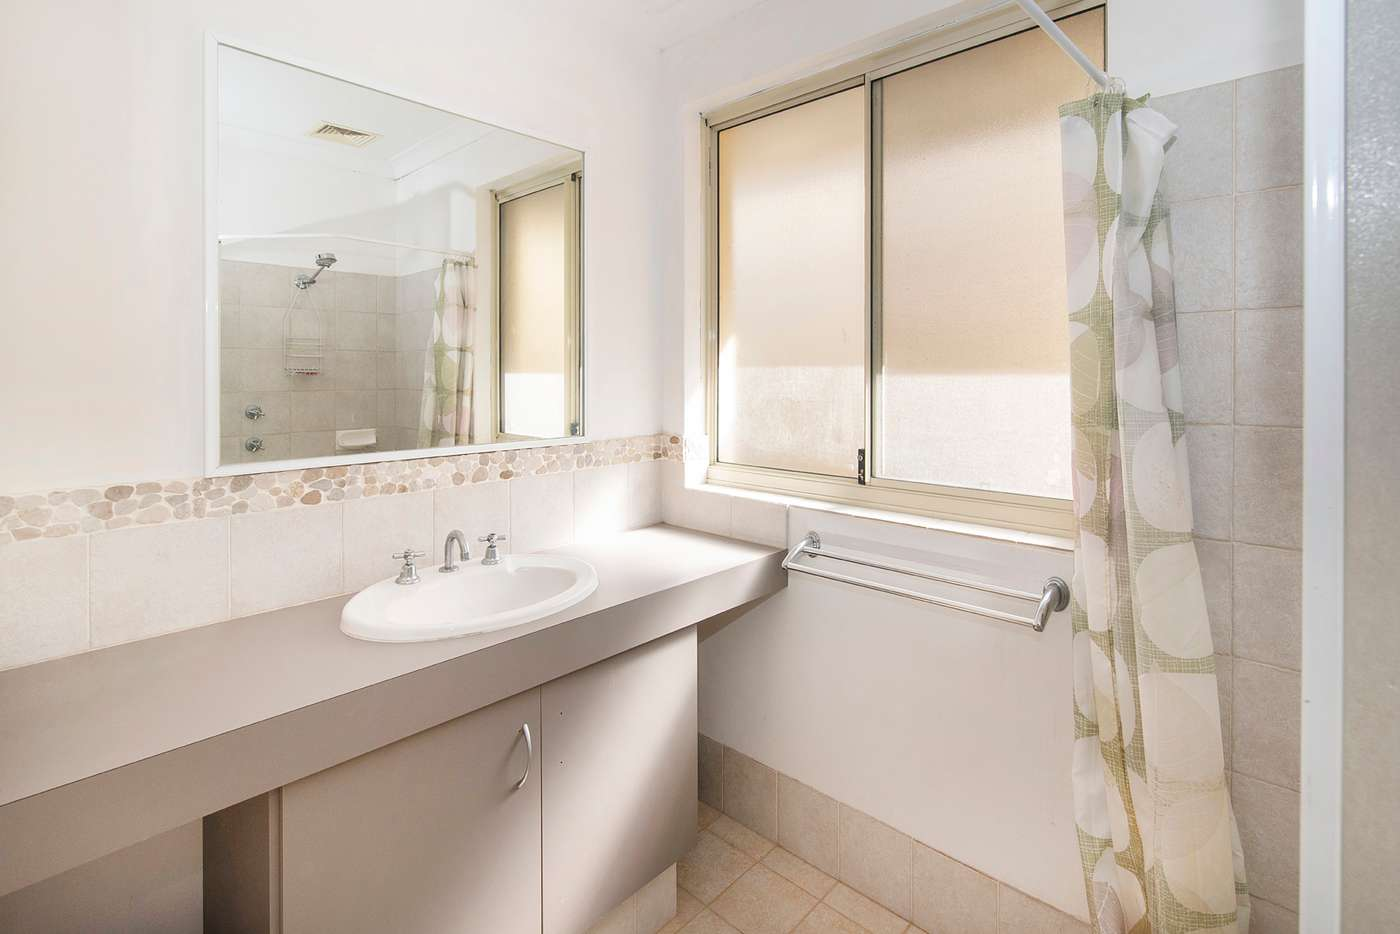 Seventh view of Homely house listing, 1 James Street, Dunsborough WA 6281